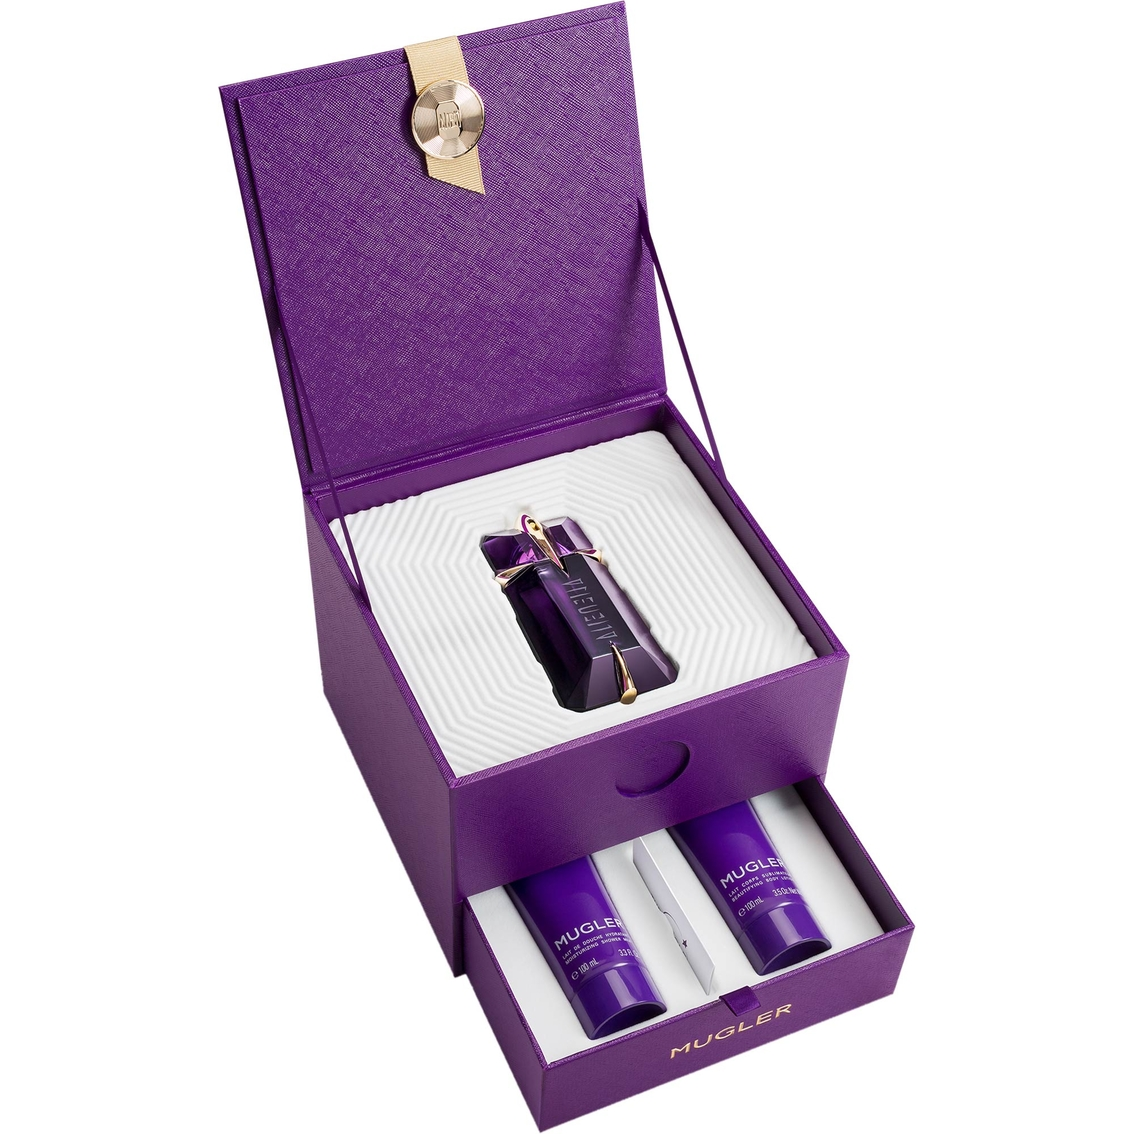 Thierry Mugler Alien Loyalty Gift Set Gifts Sets For Her Beauty